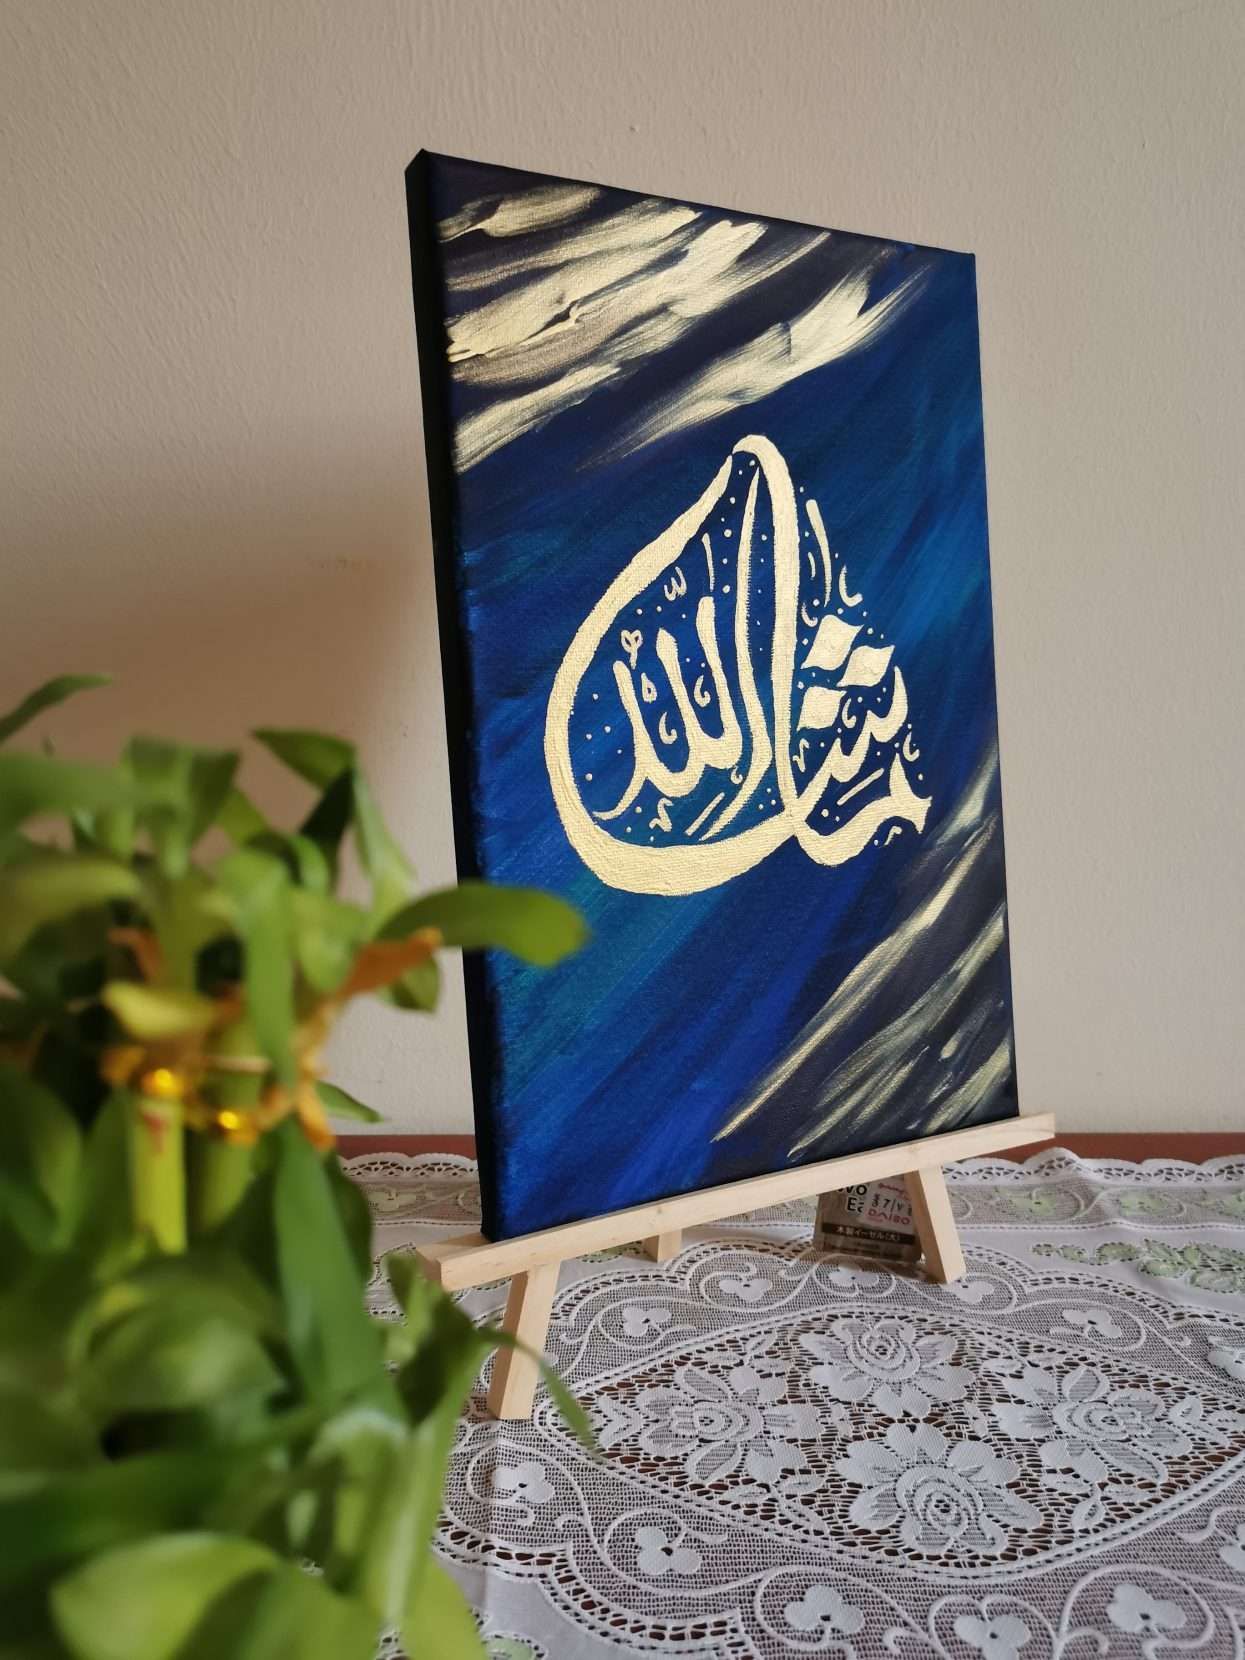 Customized paintings, calligraphy and portraits